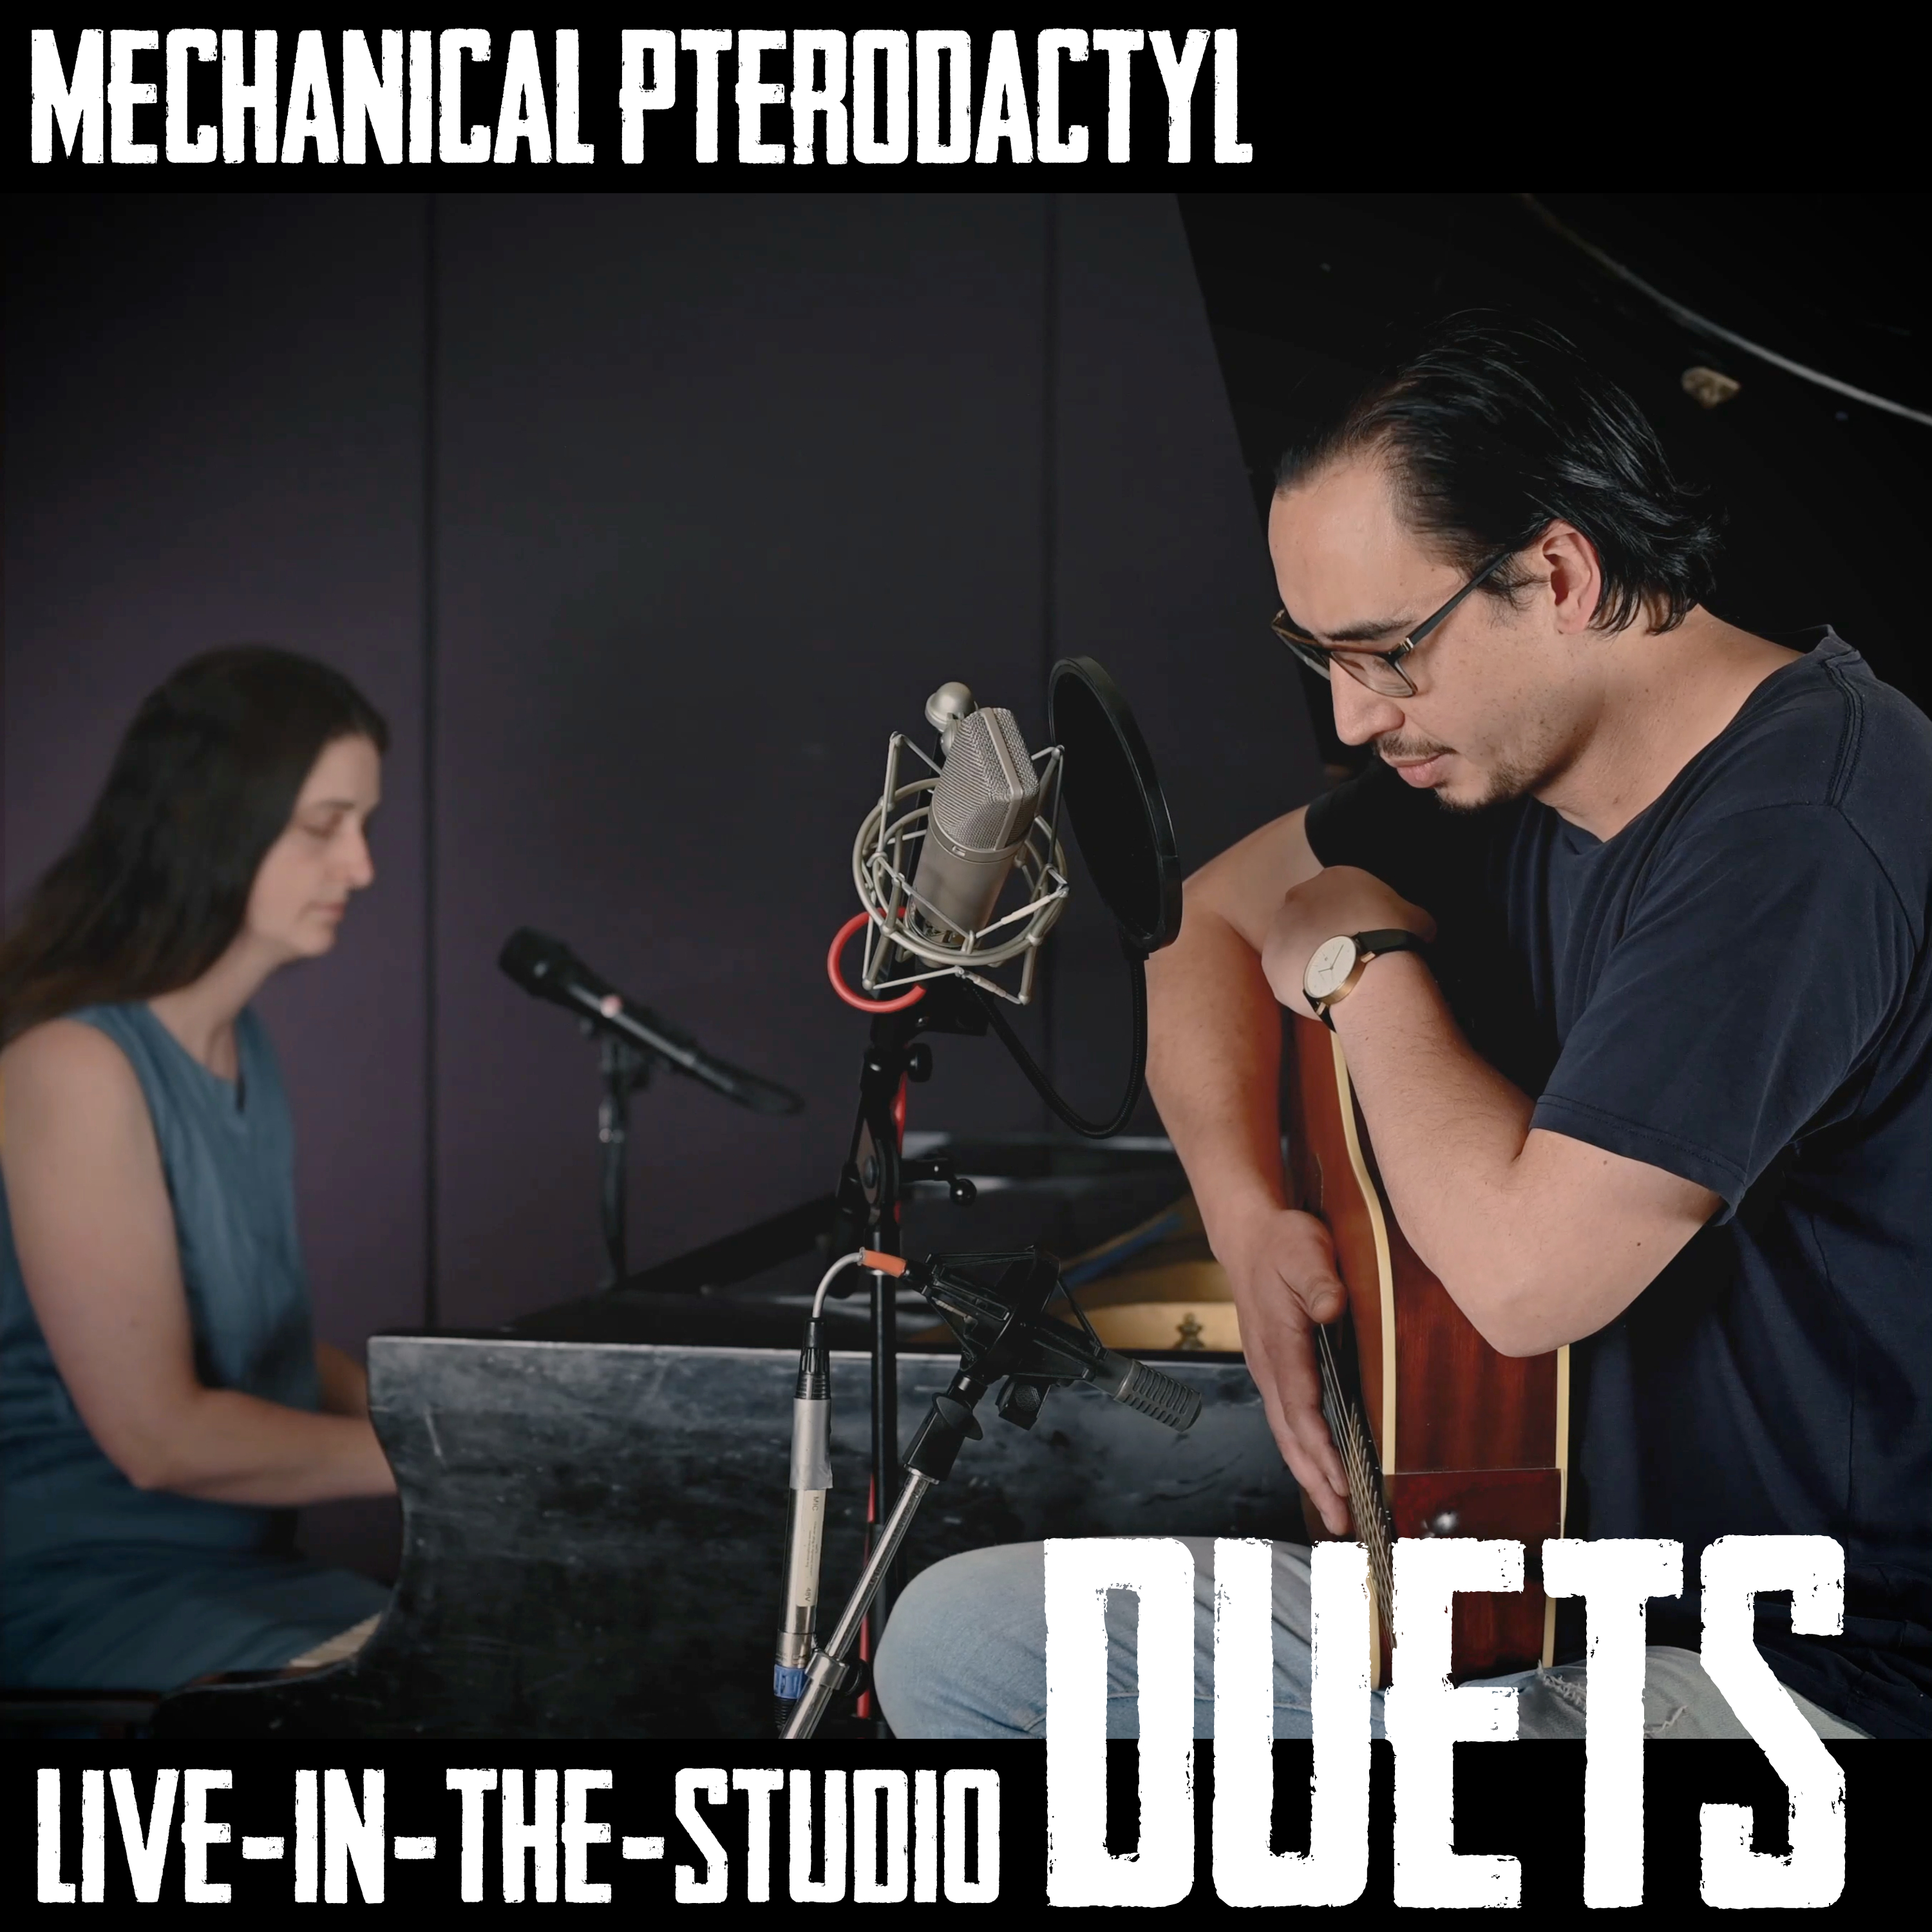 Duets (Live-in-the-Studio) Image